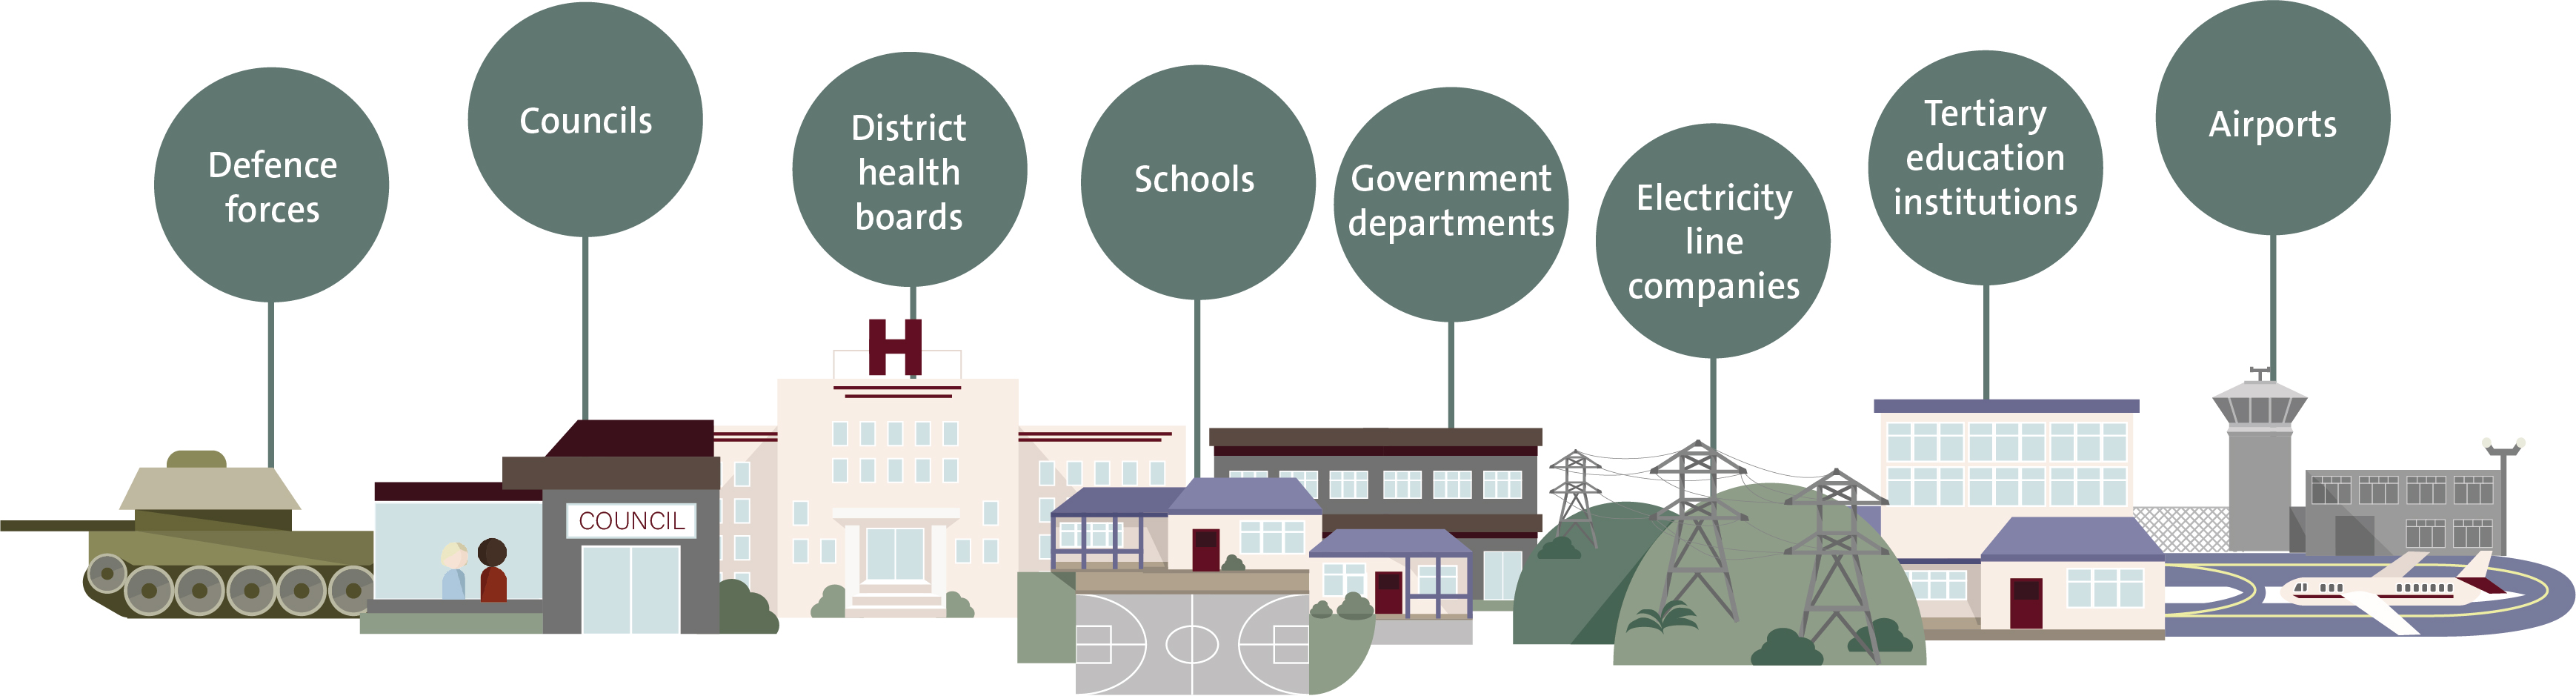 Illustration showing examples of the kind of public organisations we audit. The examples are defence forces, councils, district health boards, schools, government departments, electricity line companies, tertiary education institutions, and airports.